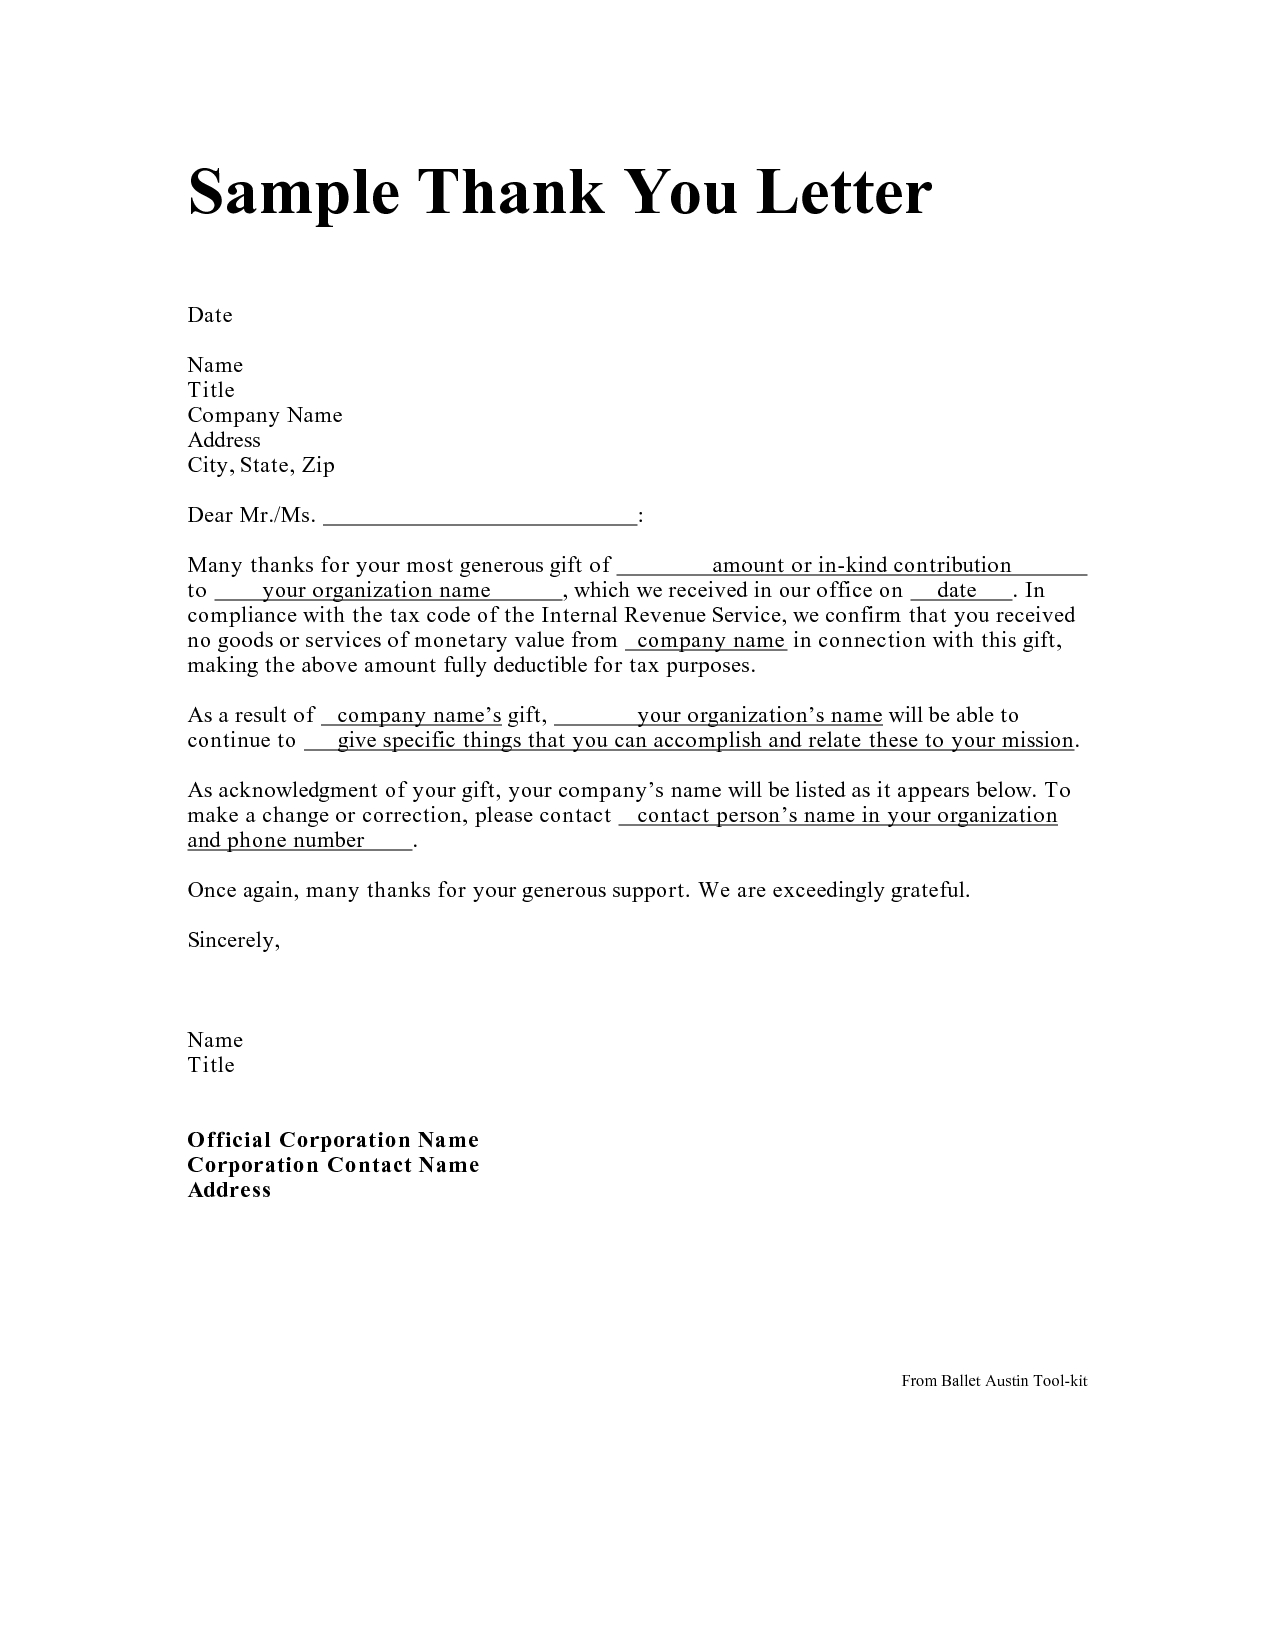 Sponsorship Thank You Letter Template - Personal Thank You Letter Personal Thank You Letter Samples